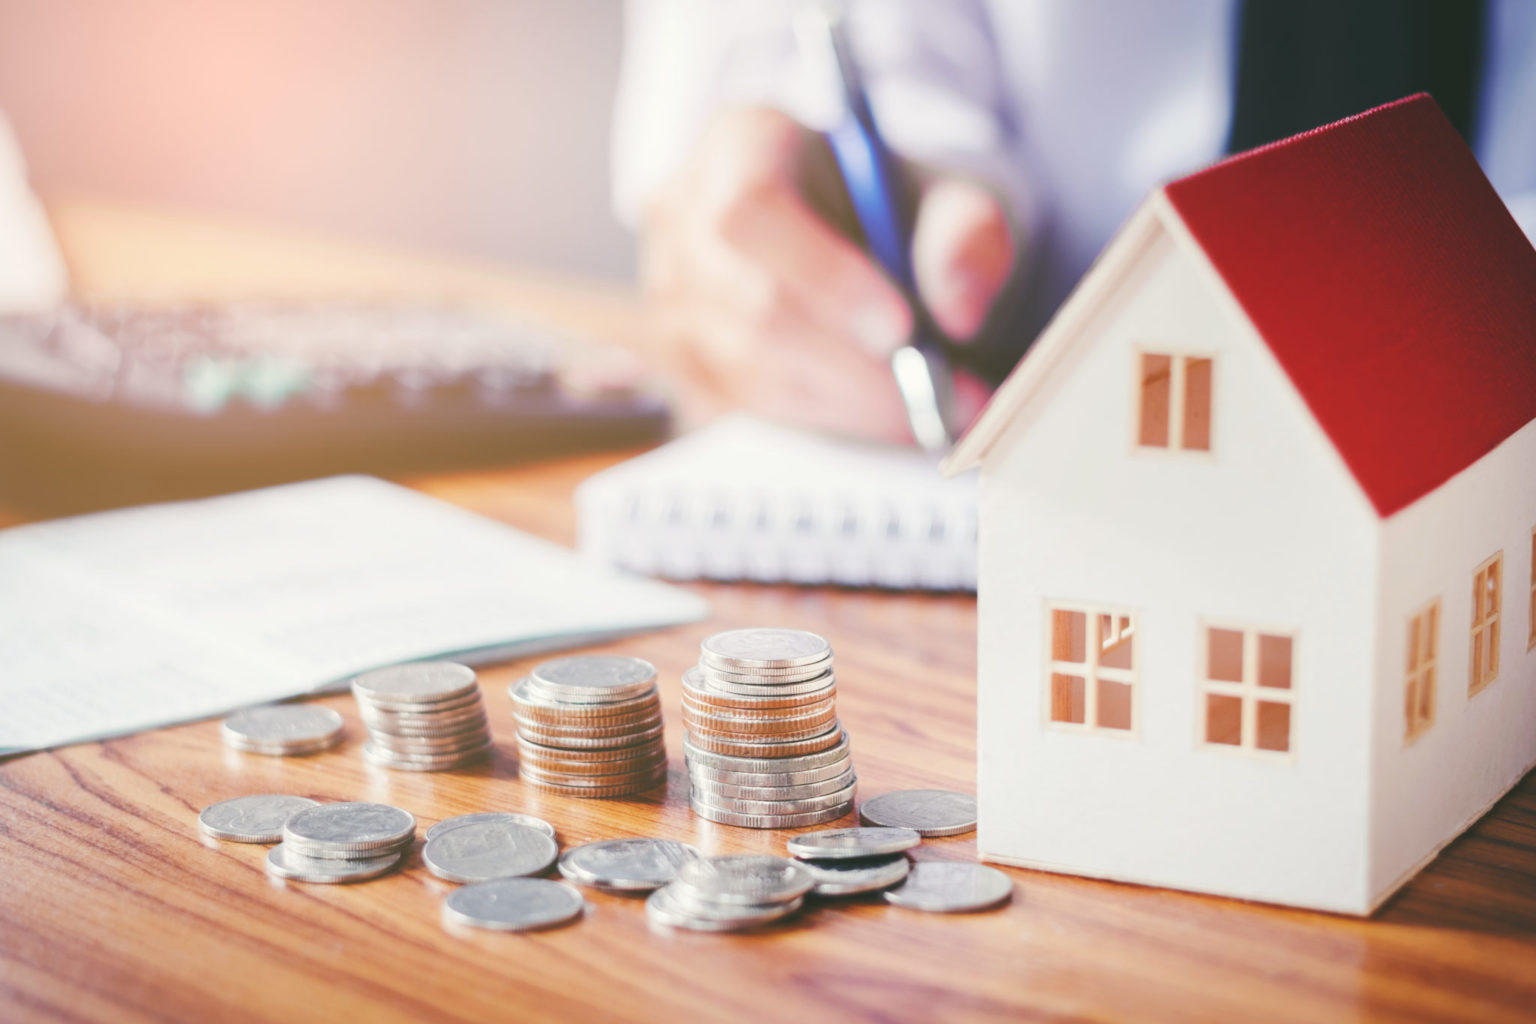 Man budgeting to buy a new home